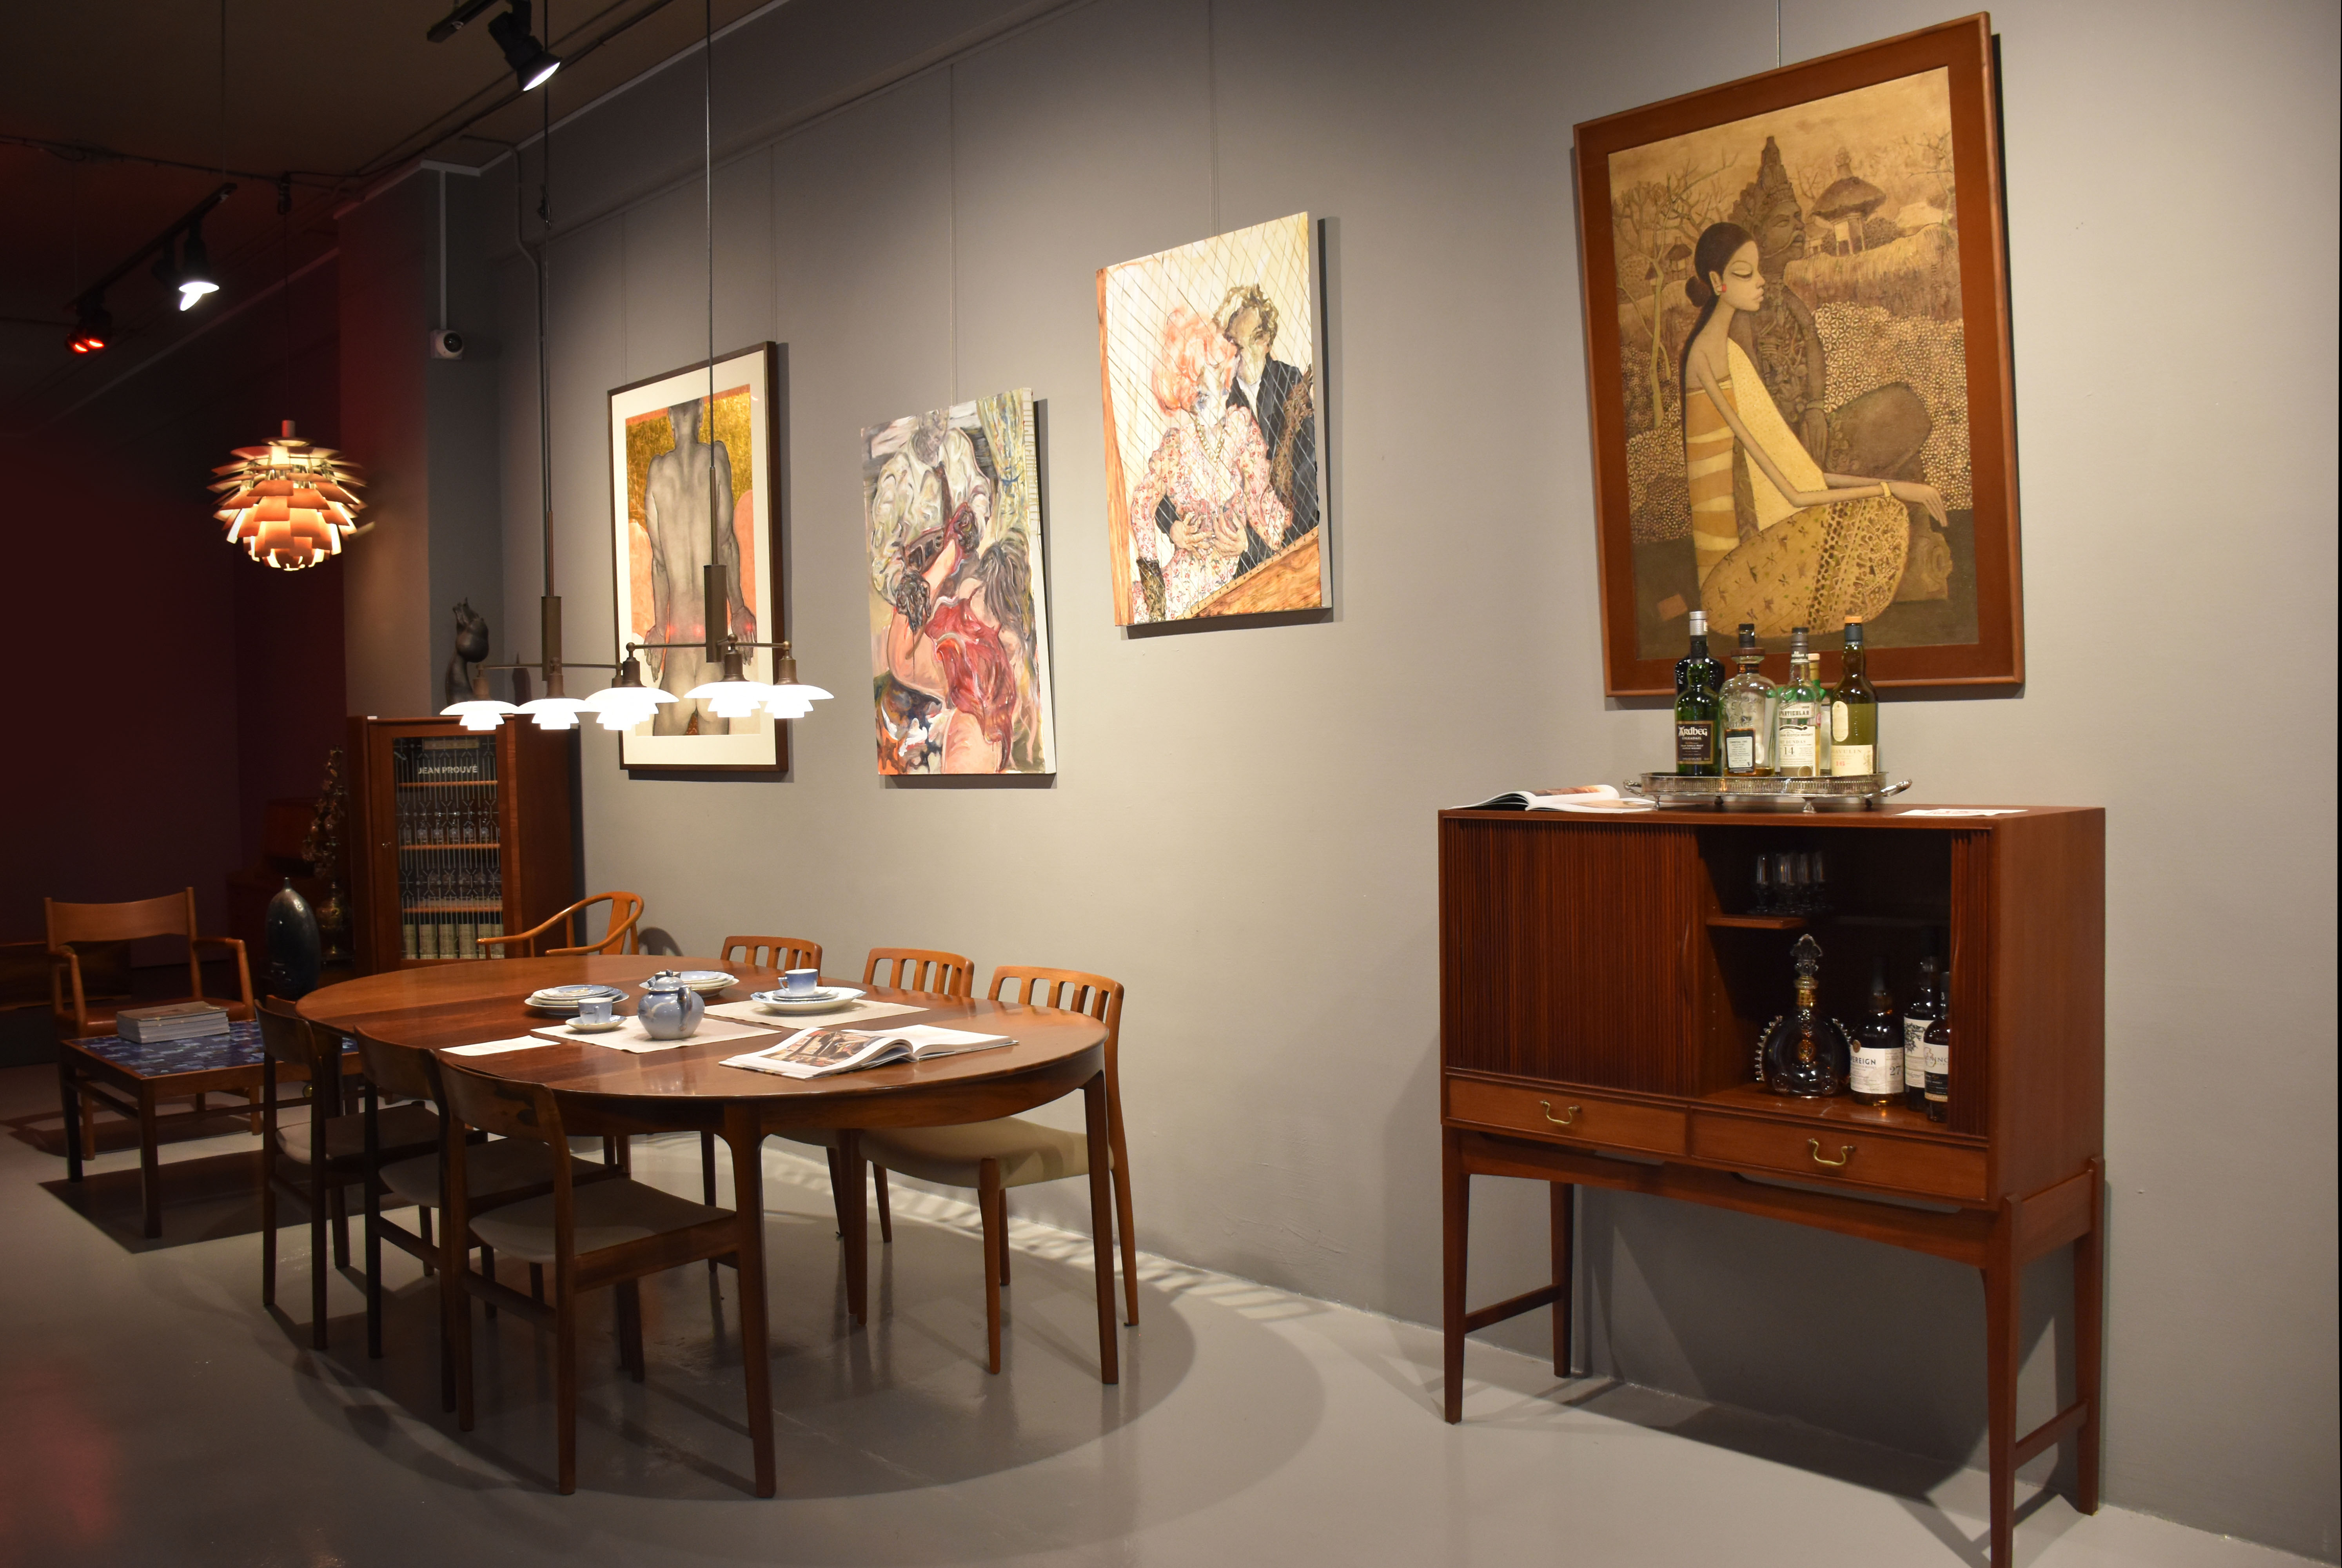 An image of the gallery set up for the exhibition: The Body as A Dream - A Singapore Art Story